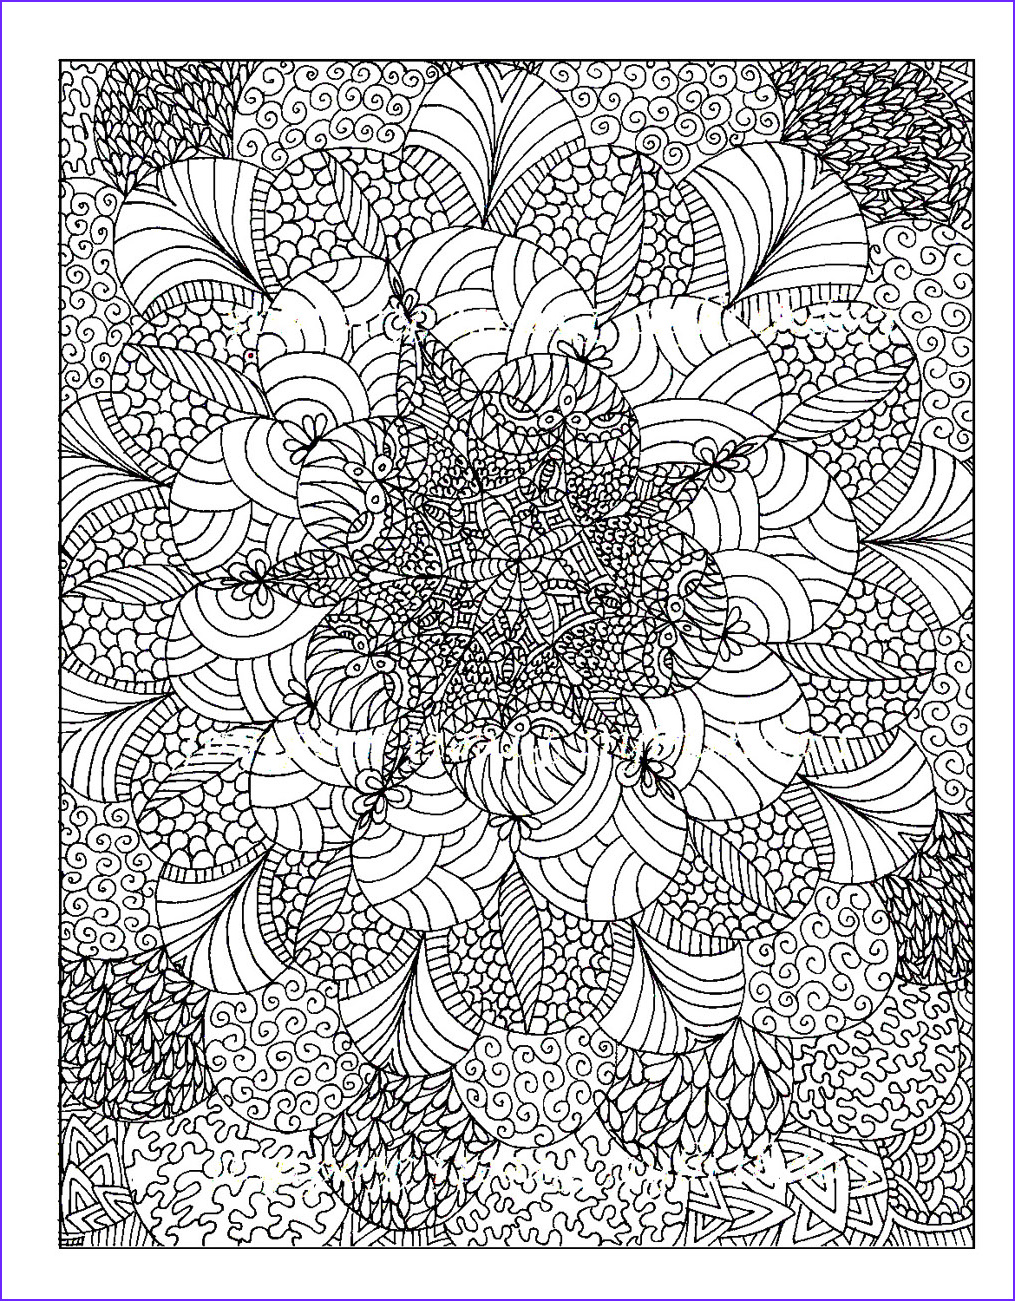 Coloring Pictures for Adults Luxury Photos Colouring for Adults Anti Stress Colouring Printables